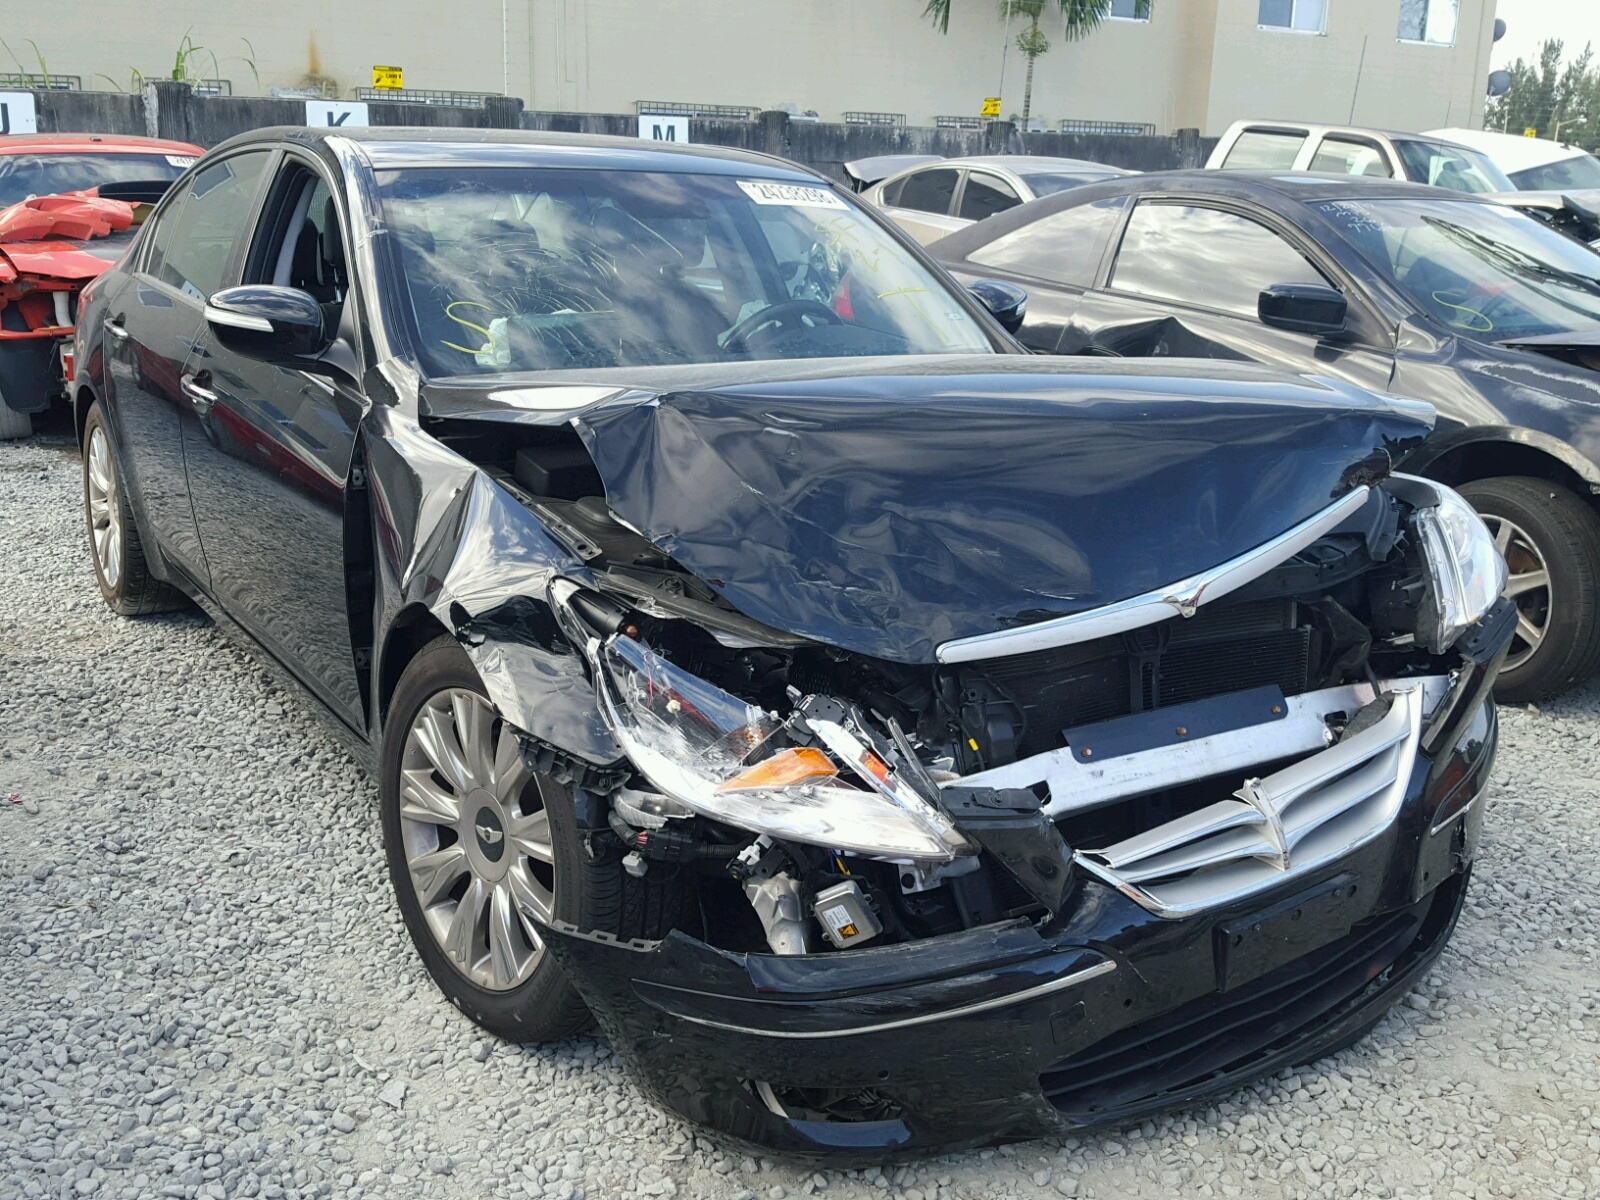 cert greer online en accent of hyundai title sale lot in carfinder on auctions auto sc salvage red gls copart